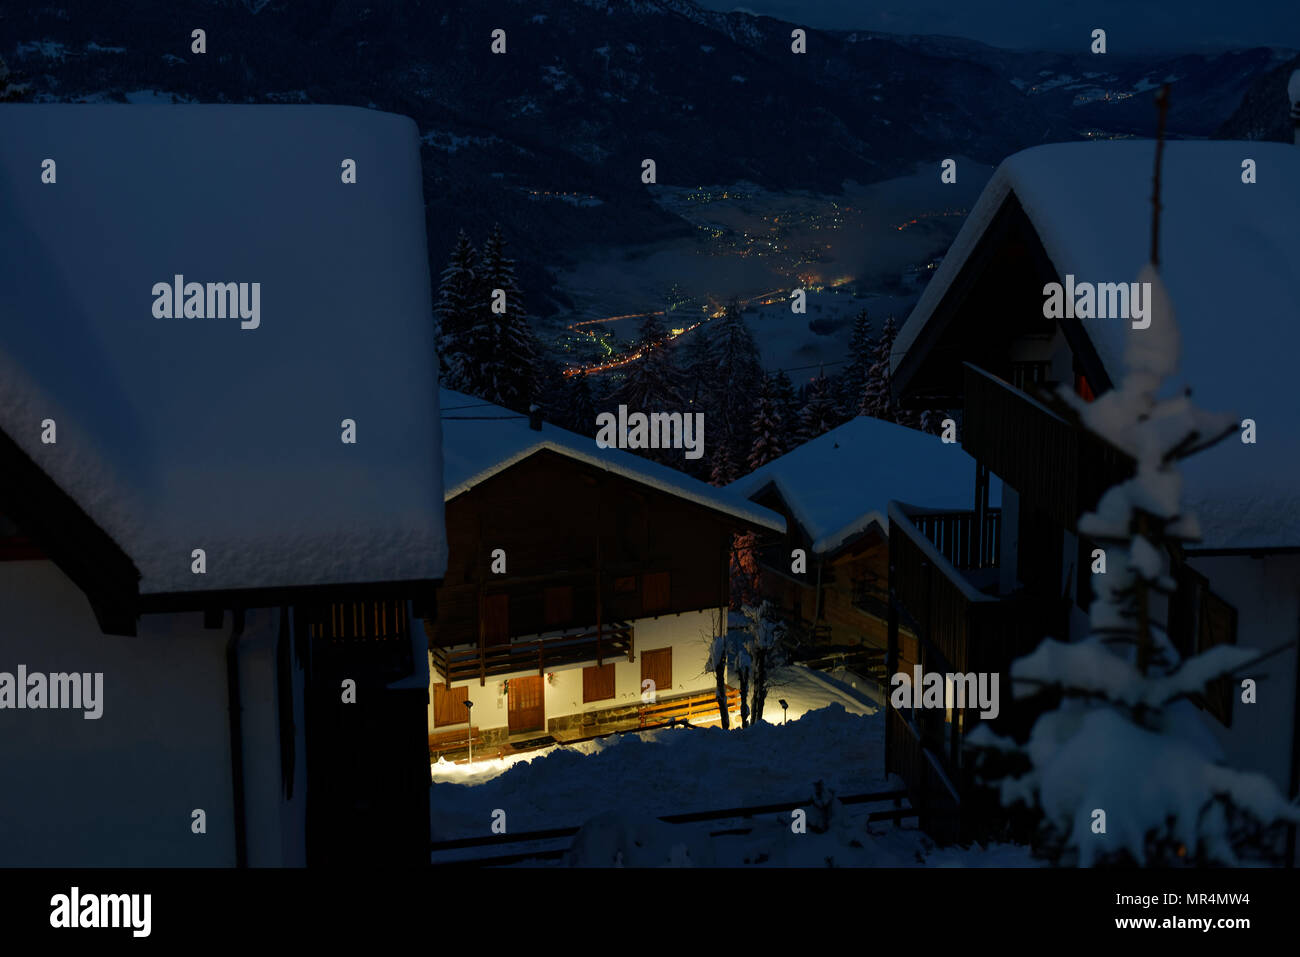 Night view from Forgarida, a ski resort town in the Dolomite Mountains, Italy - Stock Image